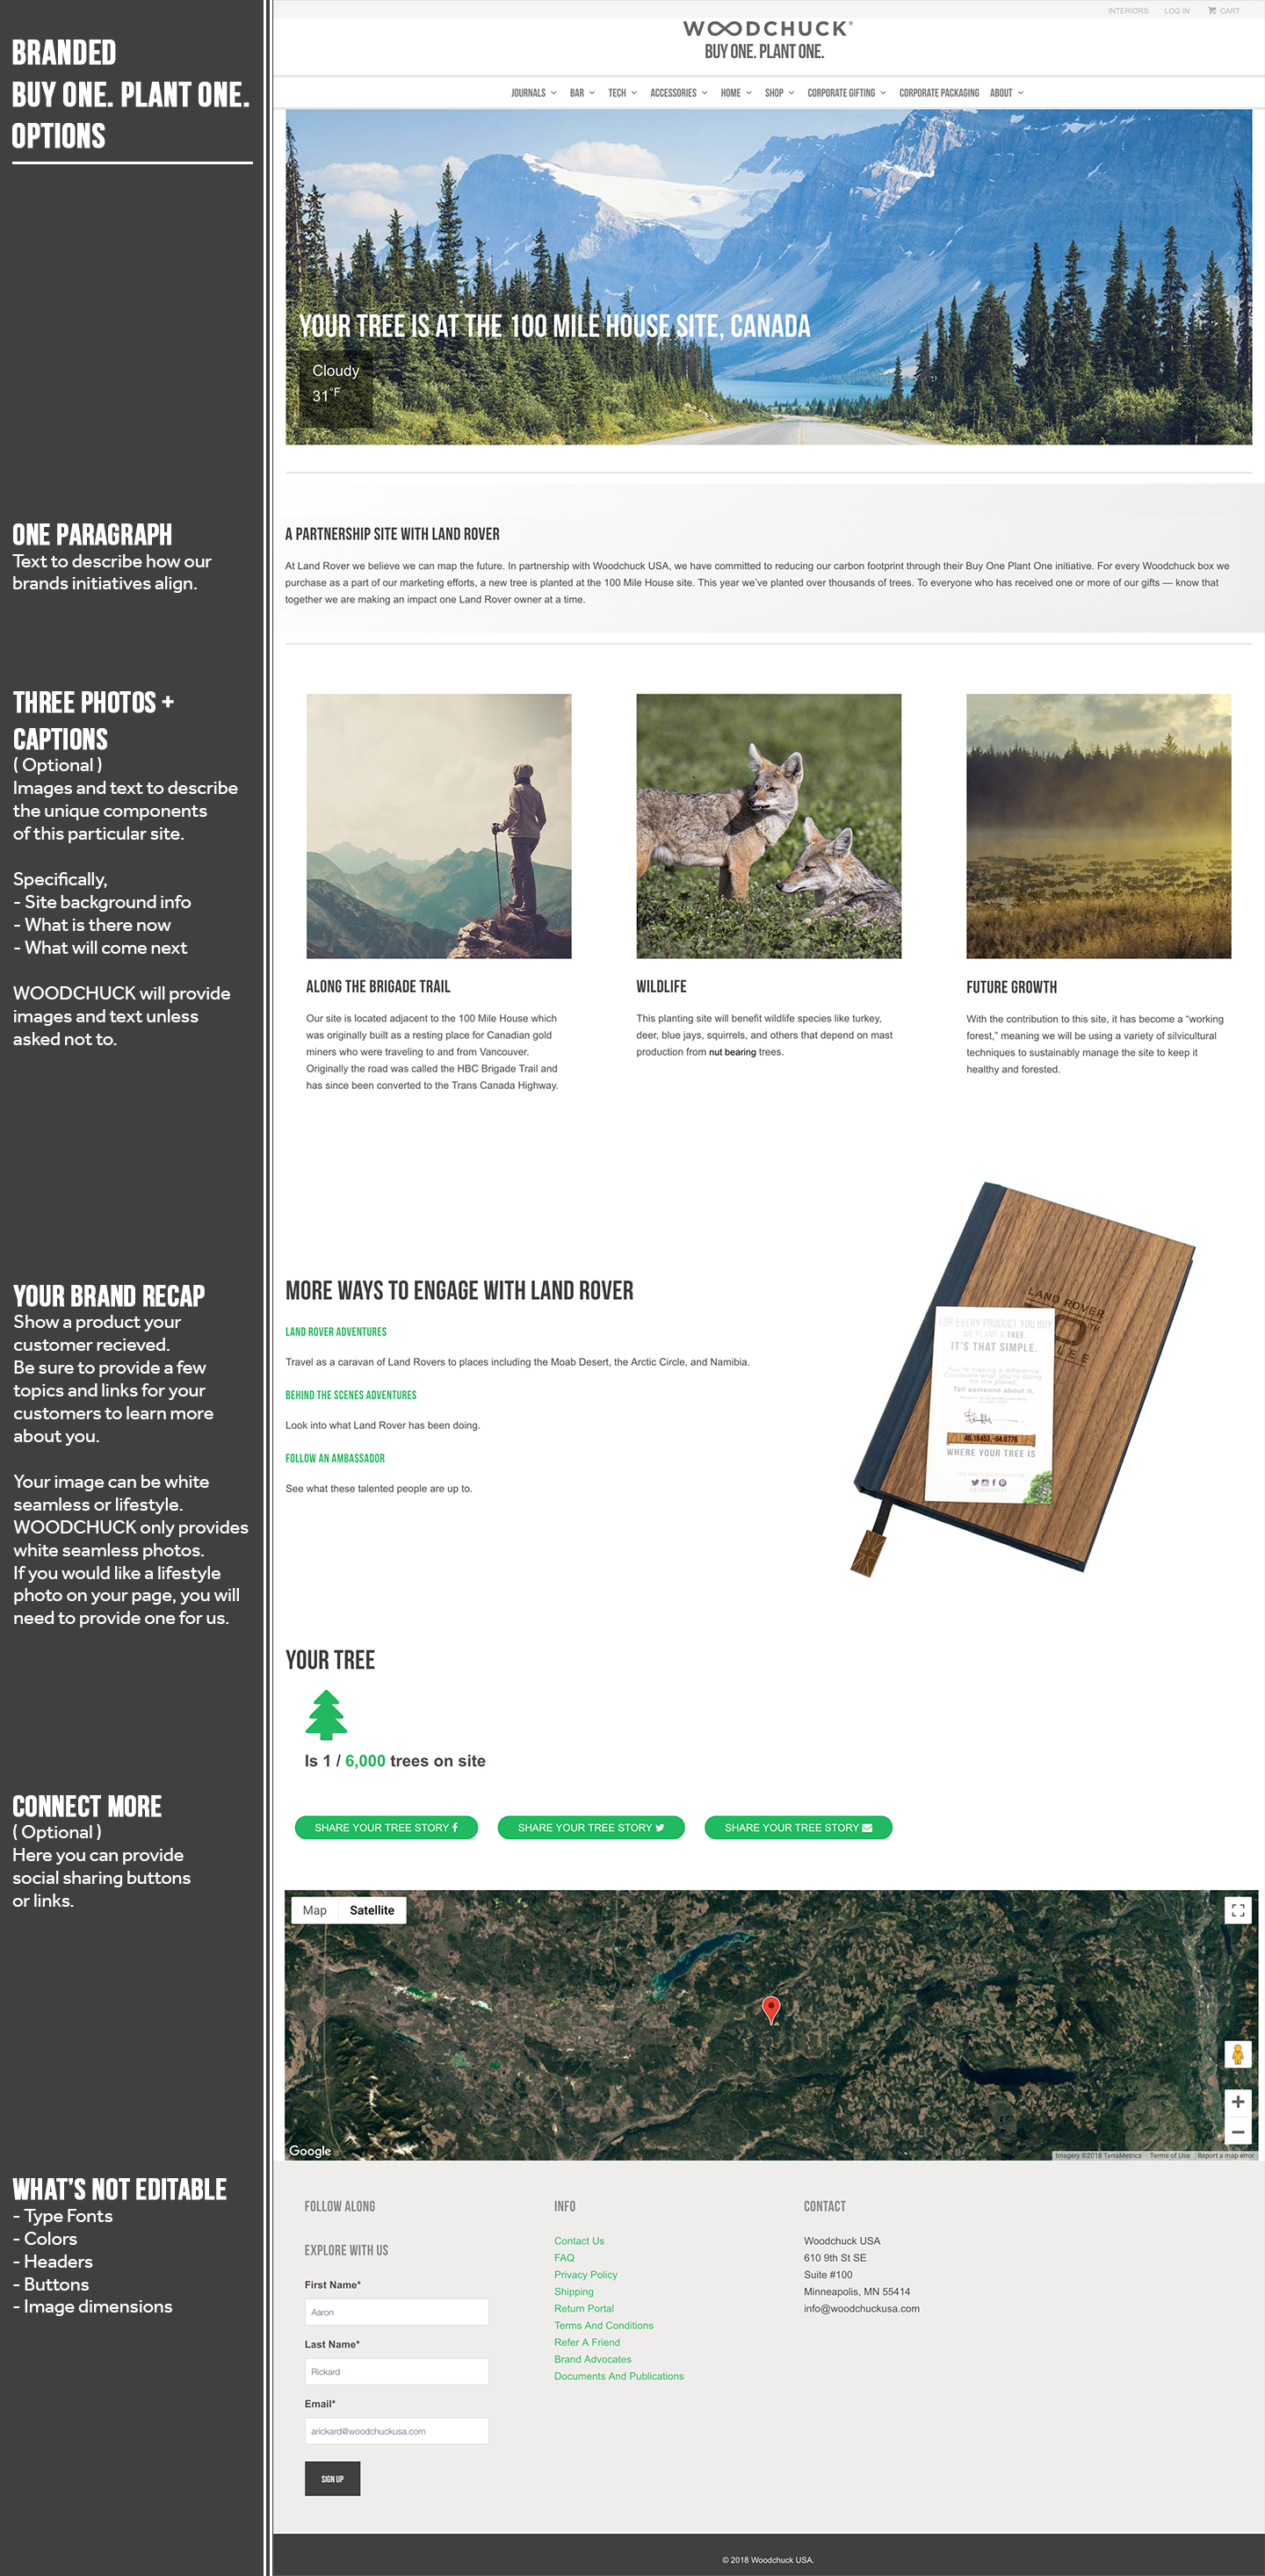 Branded Buy One Plant One Tree Page Template